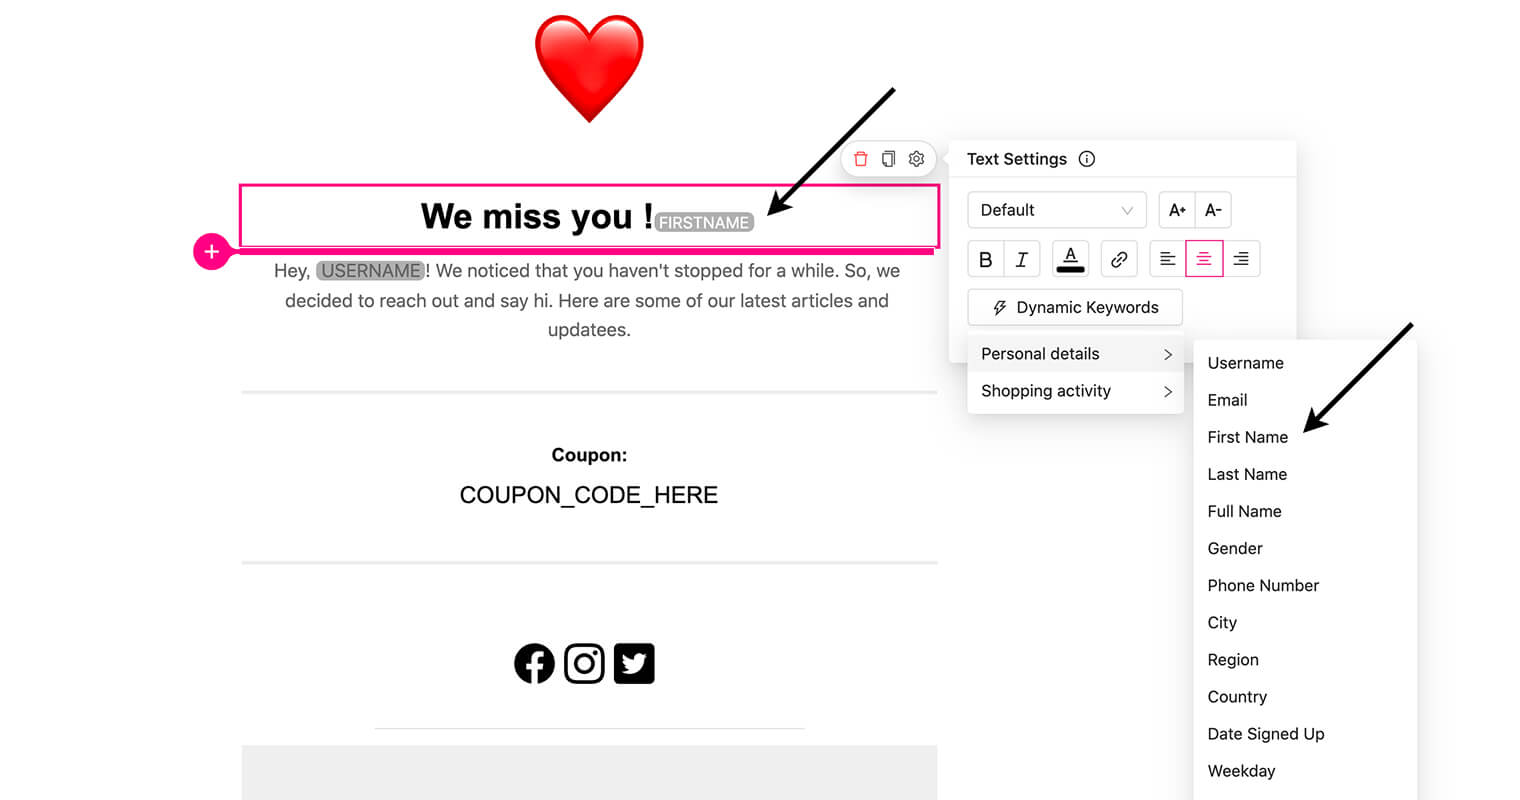 personalize content with dynamic keywords - greeting - emails